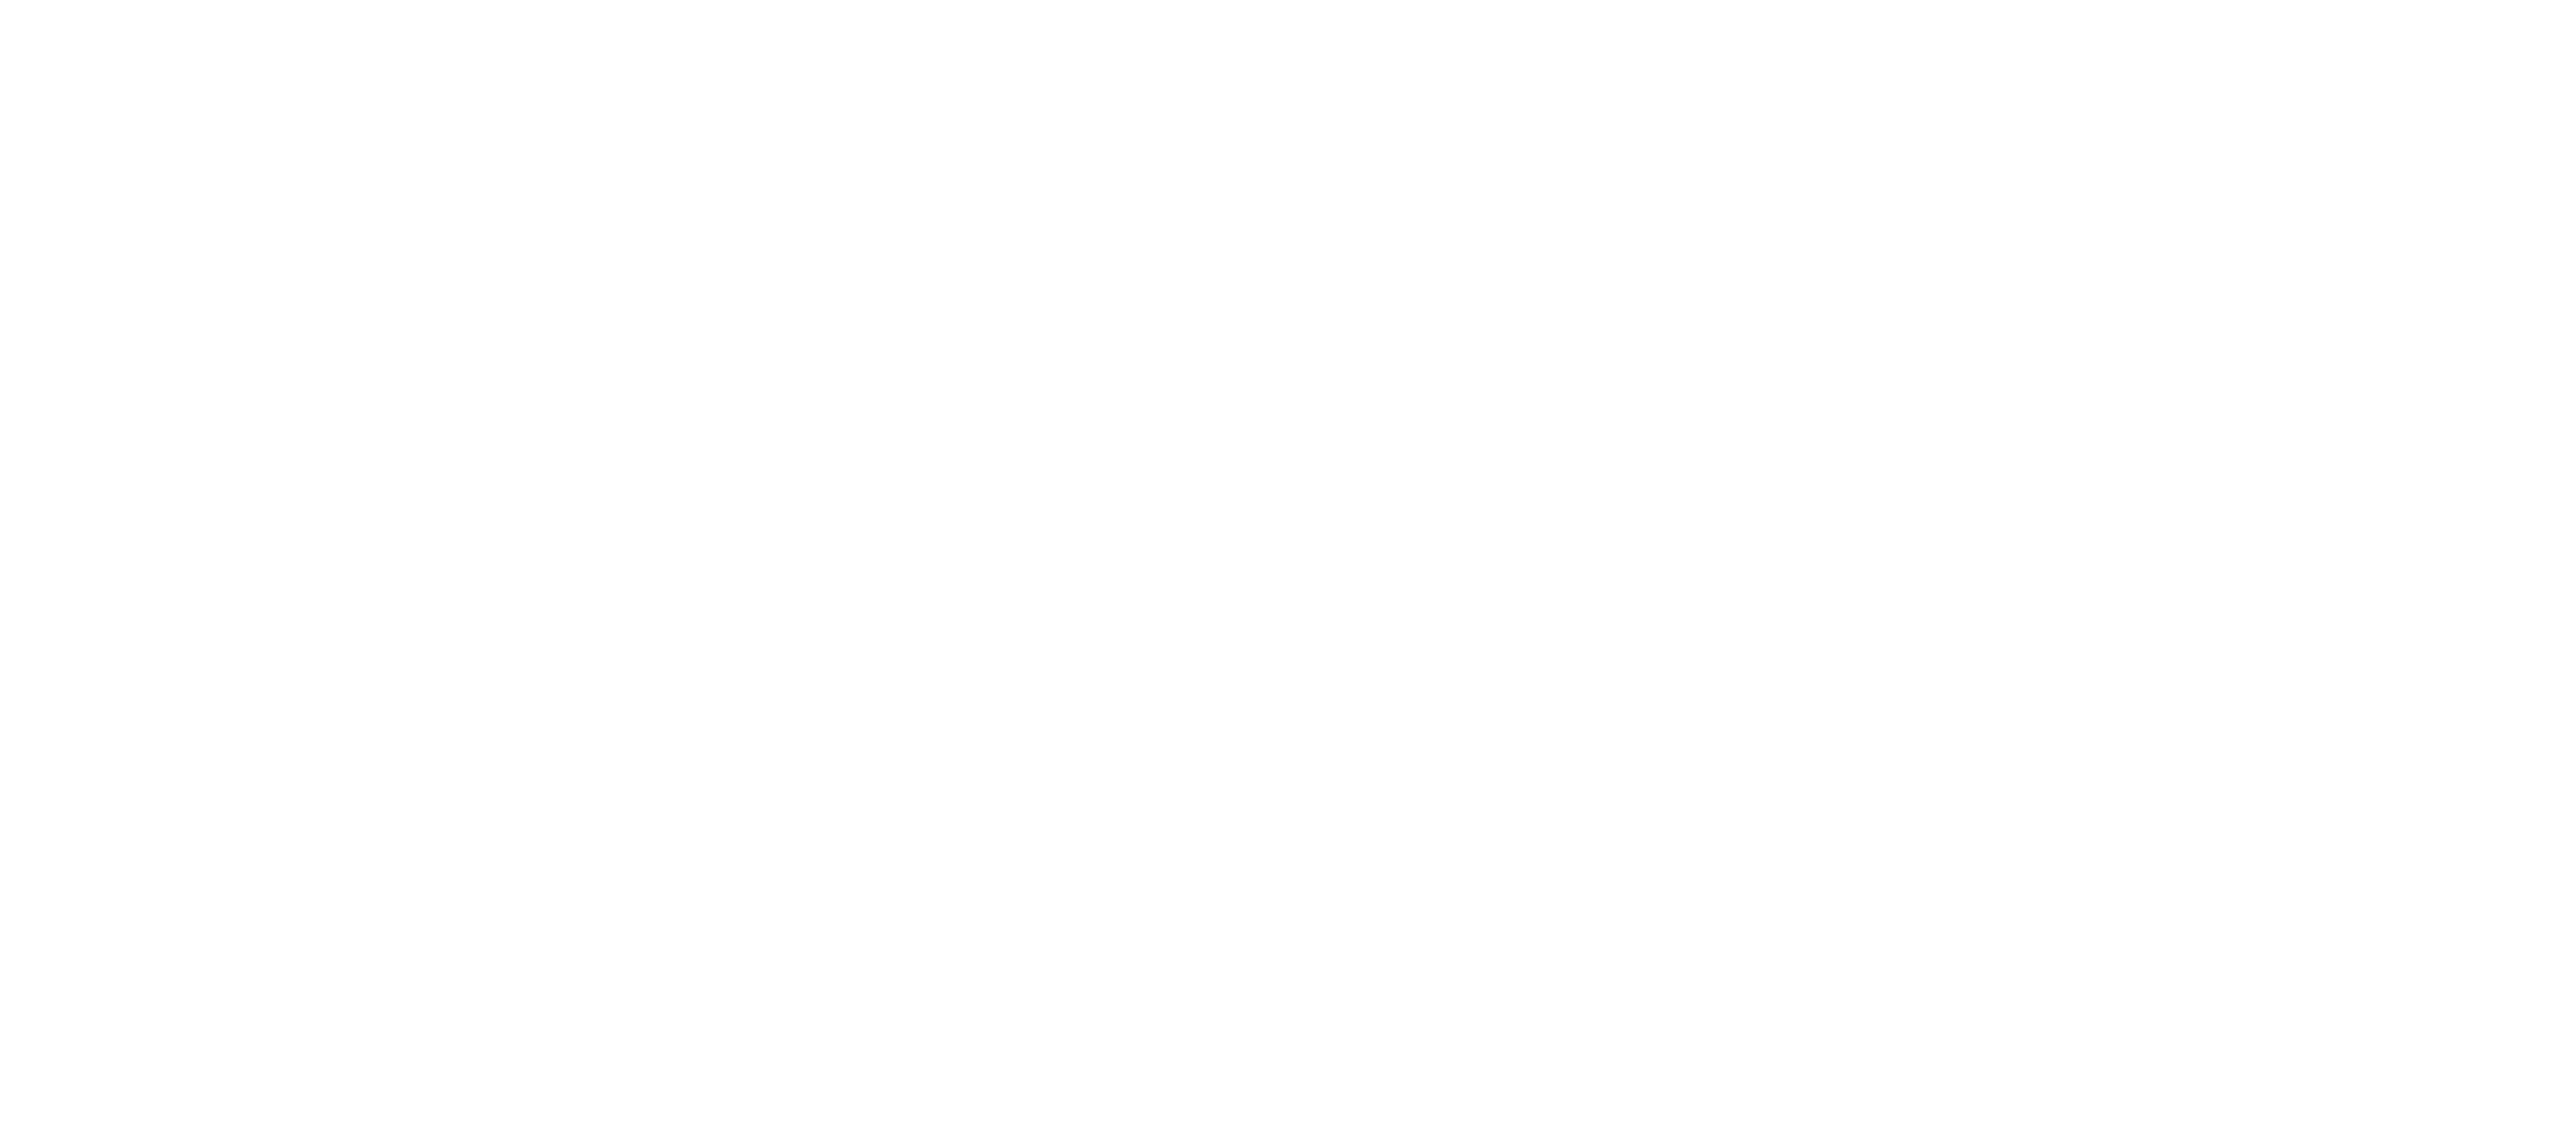 Merry Christmas PNG Clip Art Image.